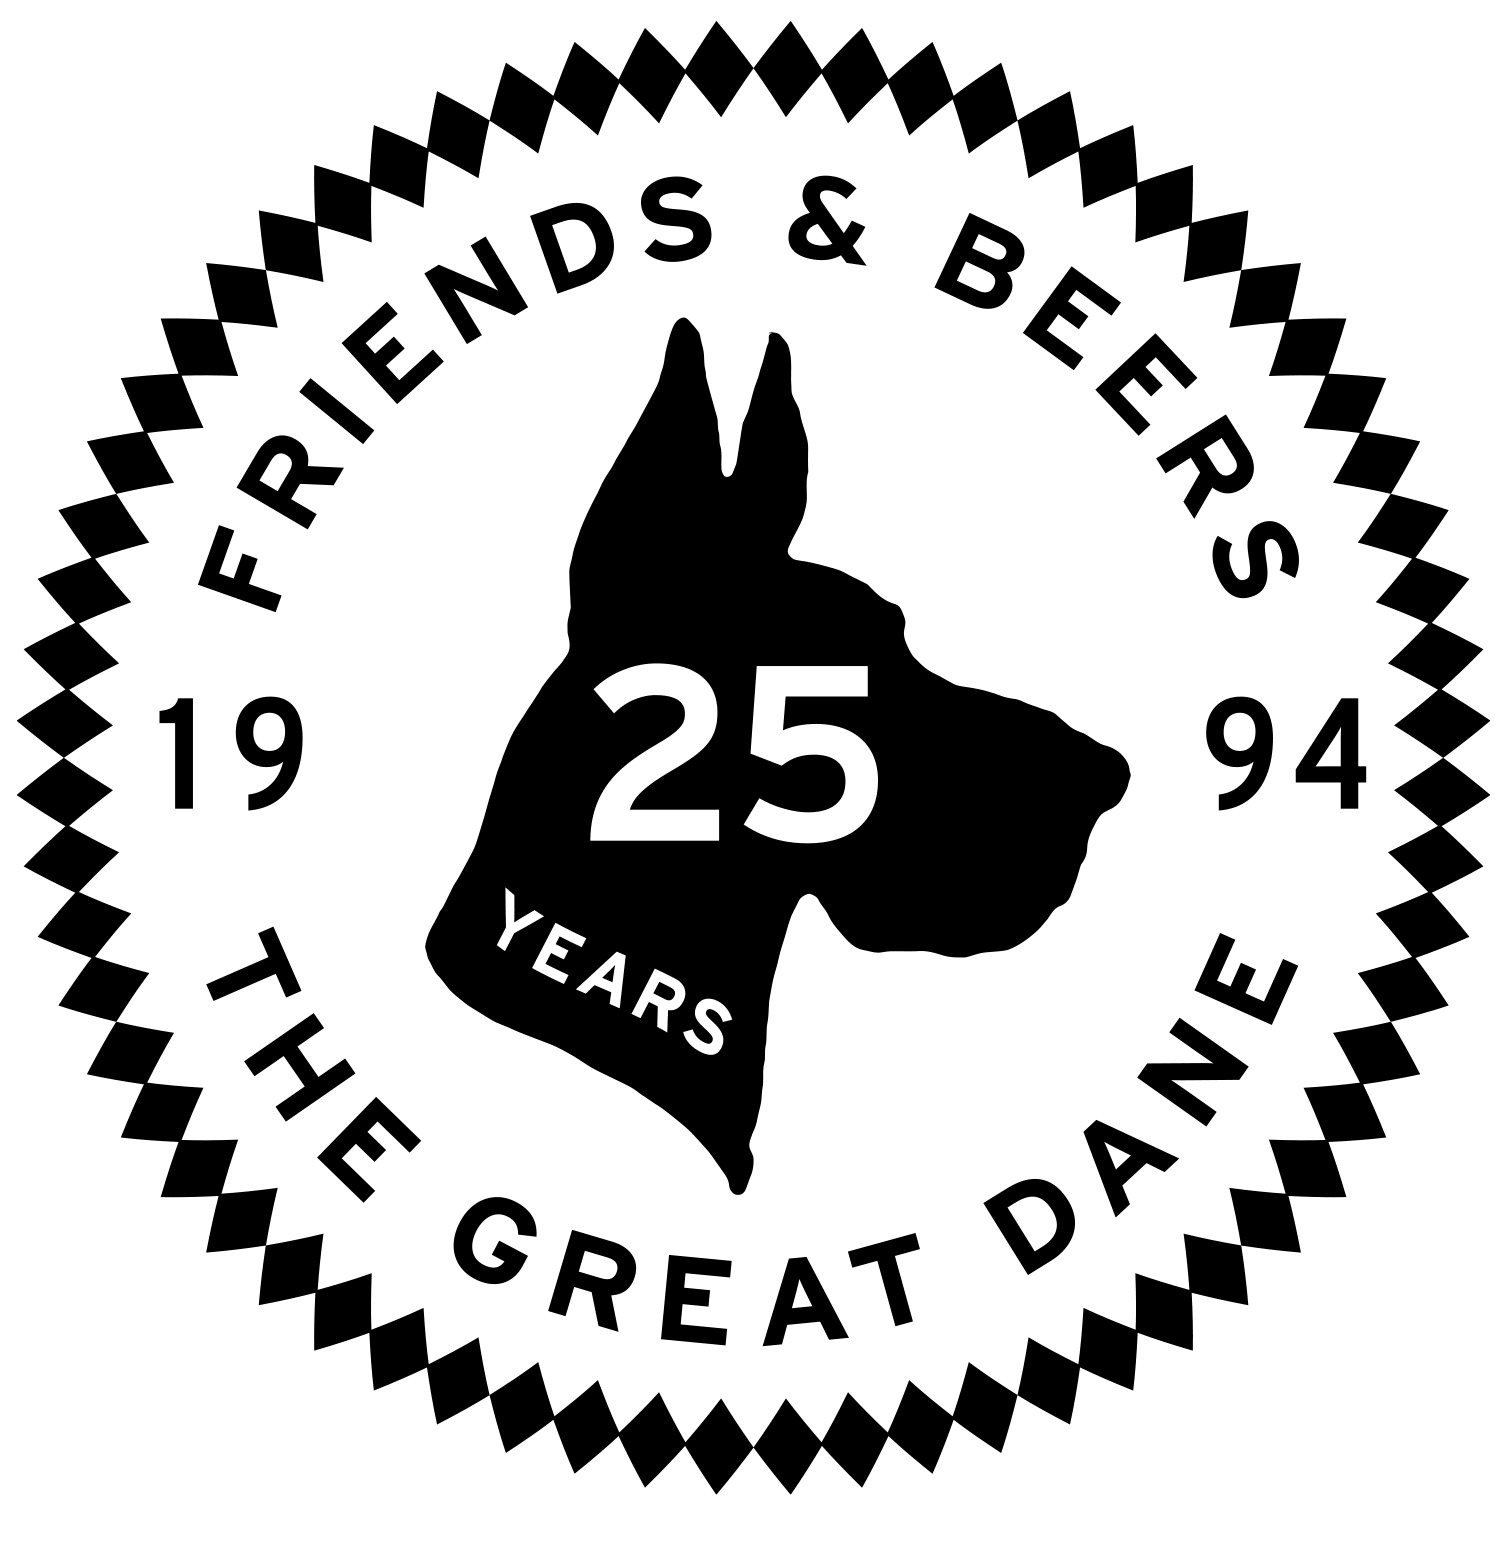 Great-Dane-25th-Anniversary-logo-min.png